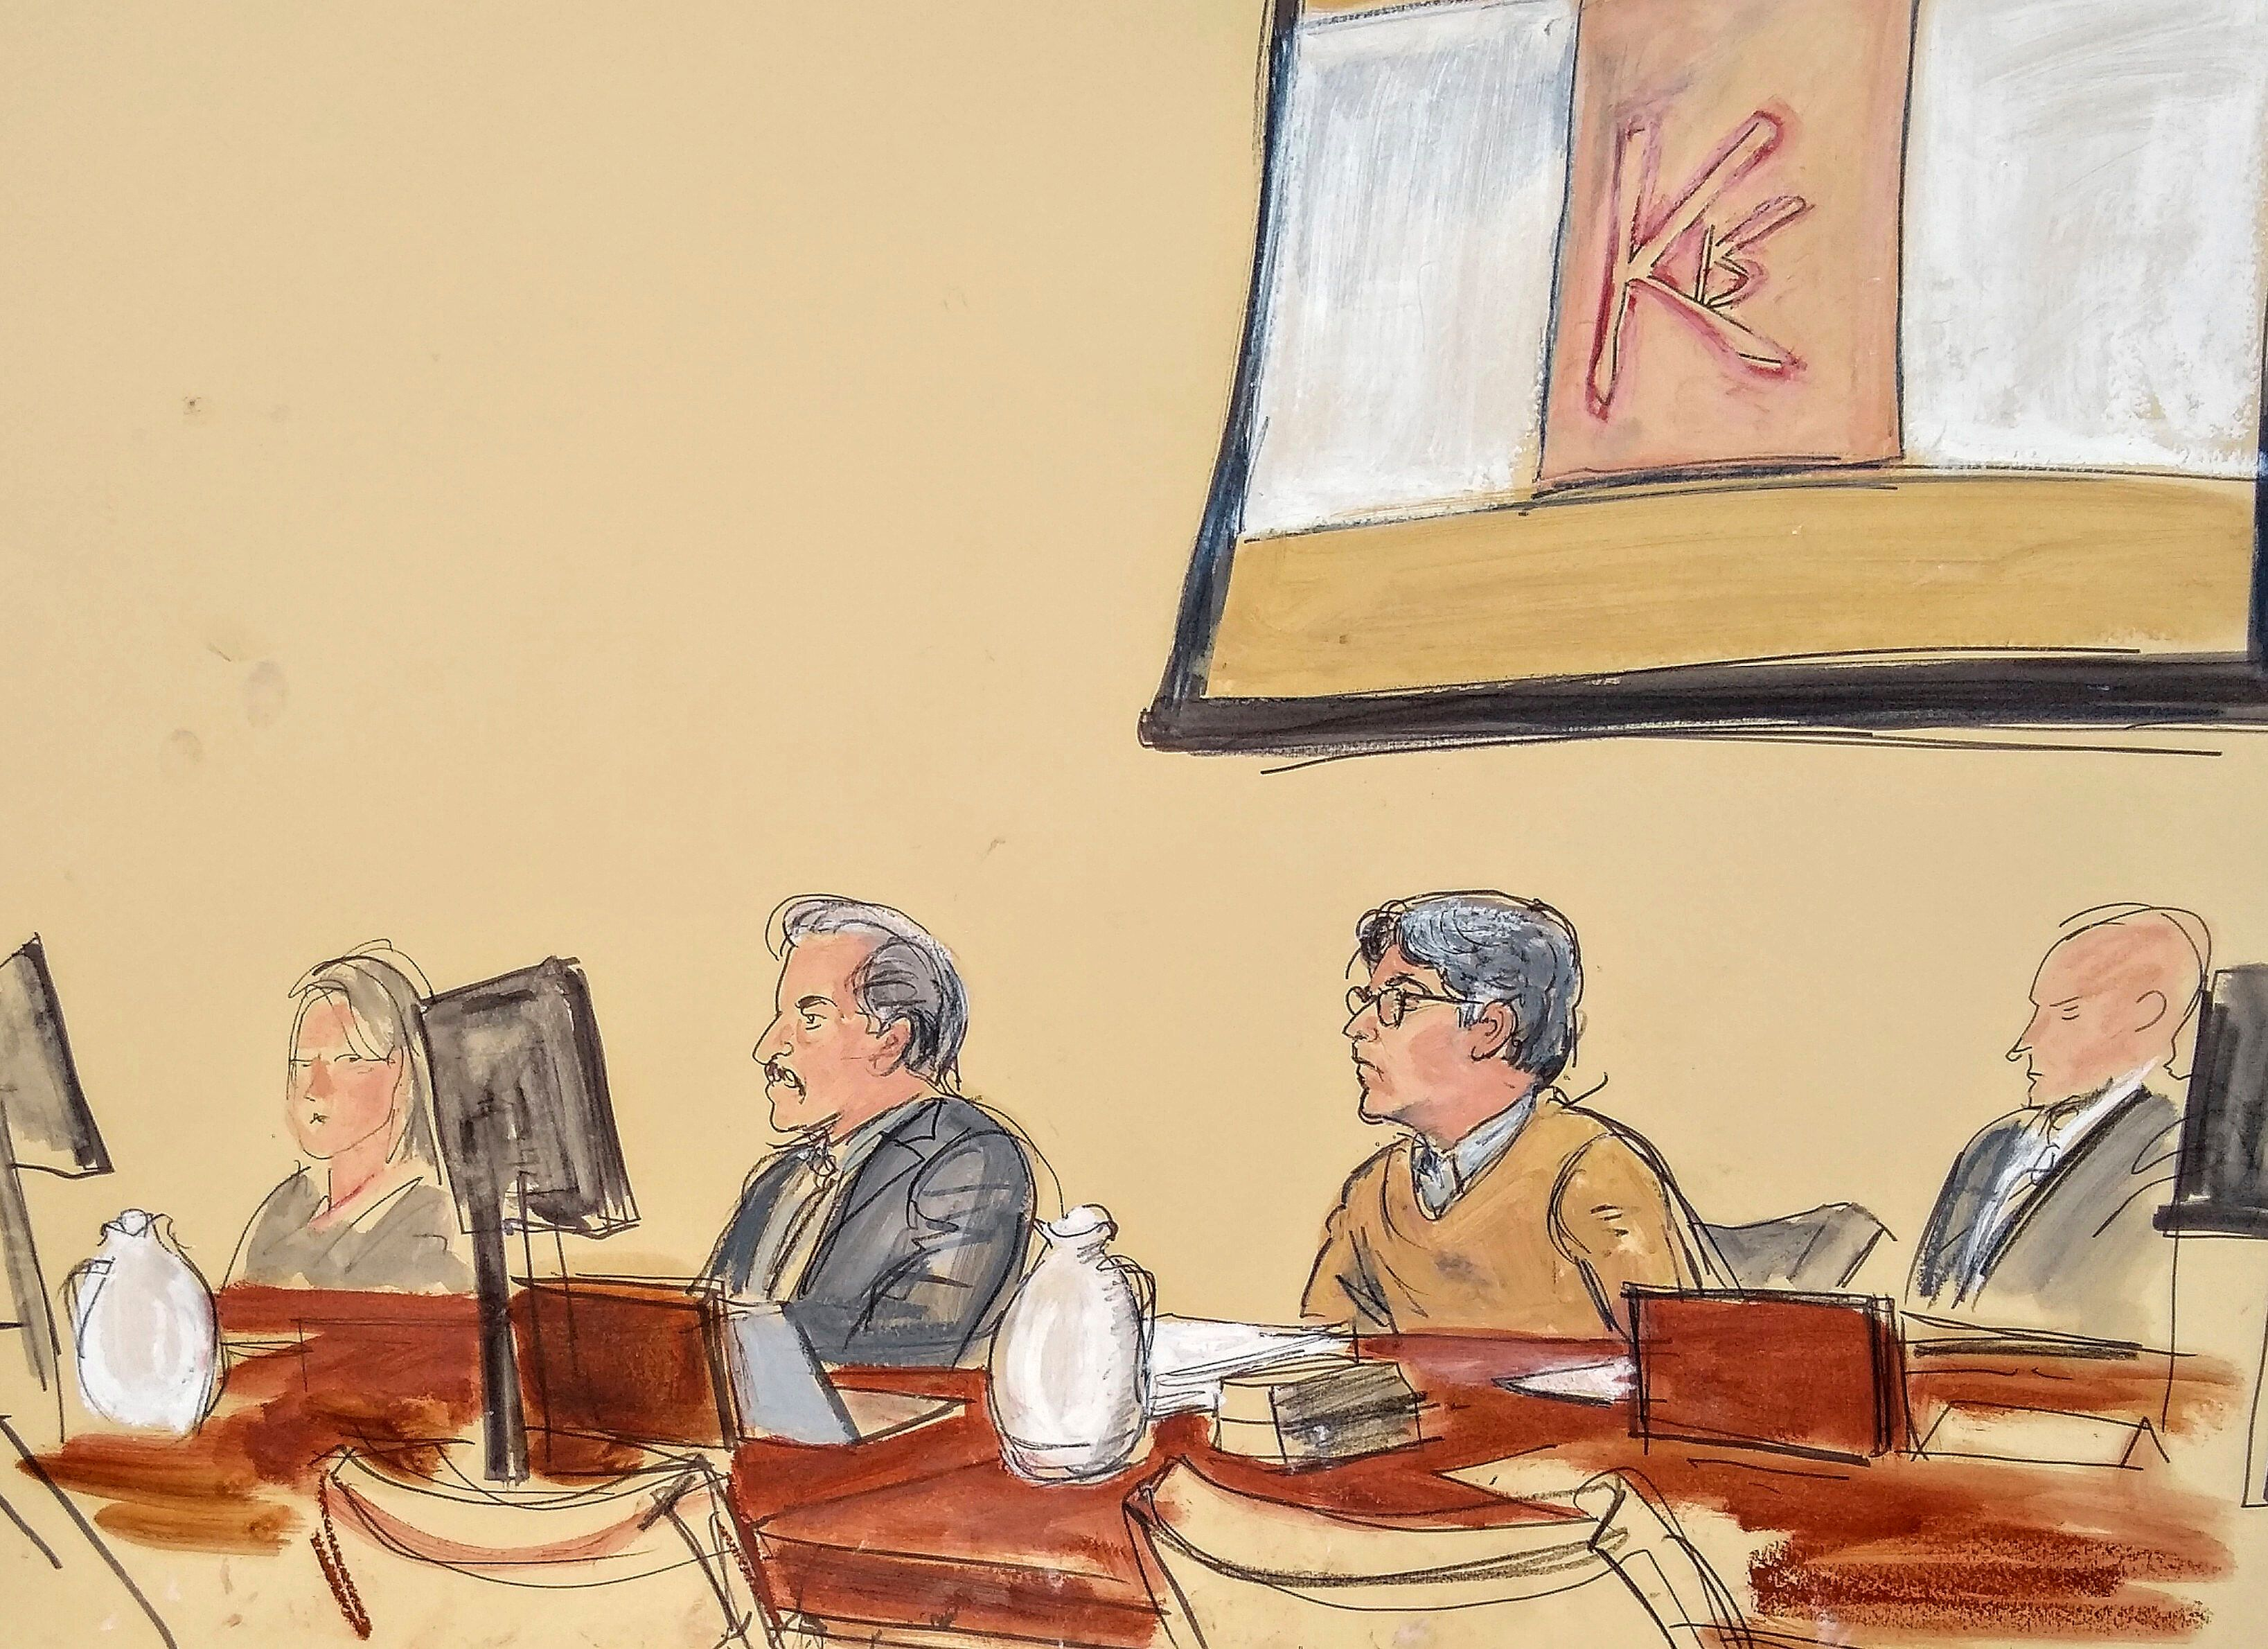 "In this courtroom artist's sketch, Keith Raniere, second from right, leader of the secretive group NXIVM, attends his trial in Brooklyn federal court, Tuesday, May 7, 2019 in New York. Above him is a screen with an image of a branding, containing his initials KR. A federal prosecutor says the self-help guru used threats, ""shame and humiliation"" while grooming women for sex. She also described how some female followers were branded with Raniere's initials. (Elizabeth Williams via AP)"